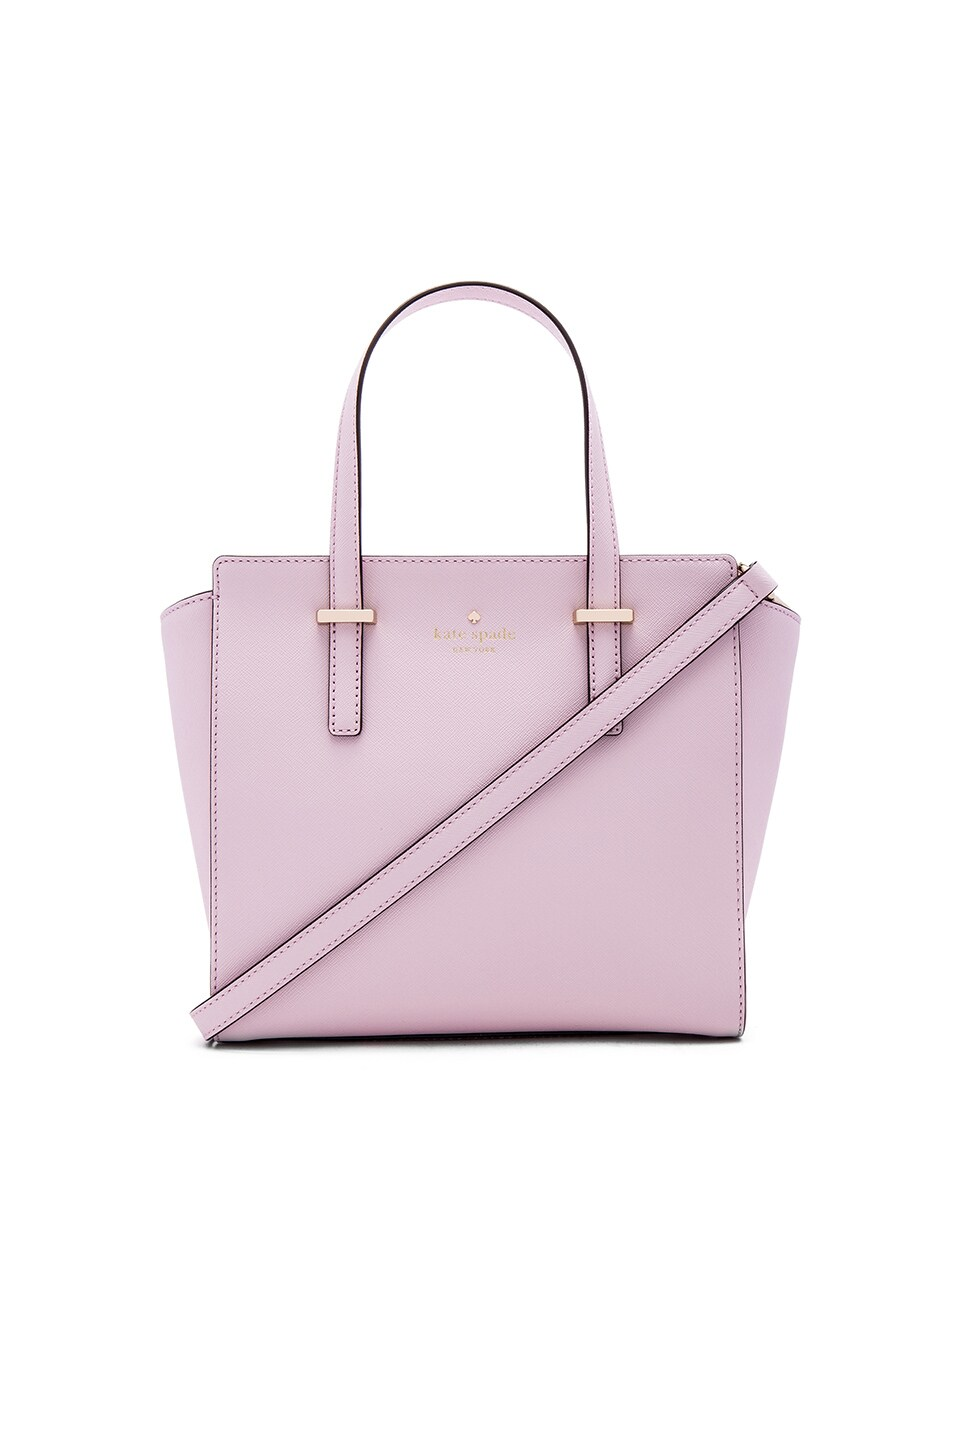 kate spade new york Small Hayden Bag in Pink Blush